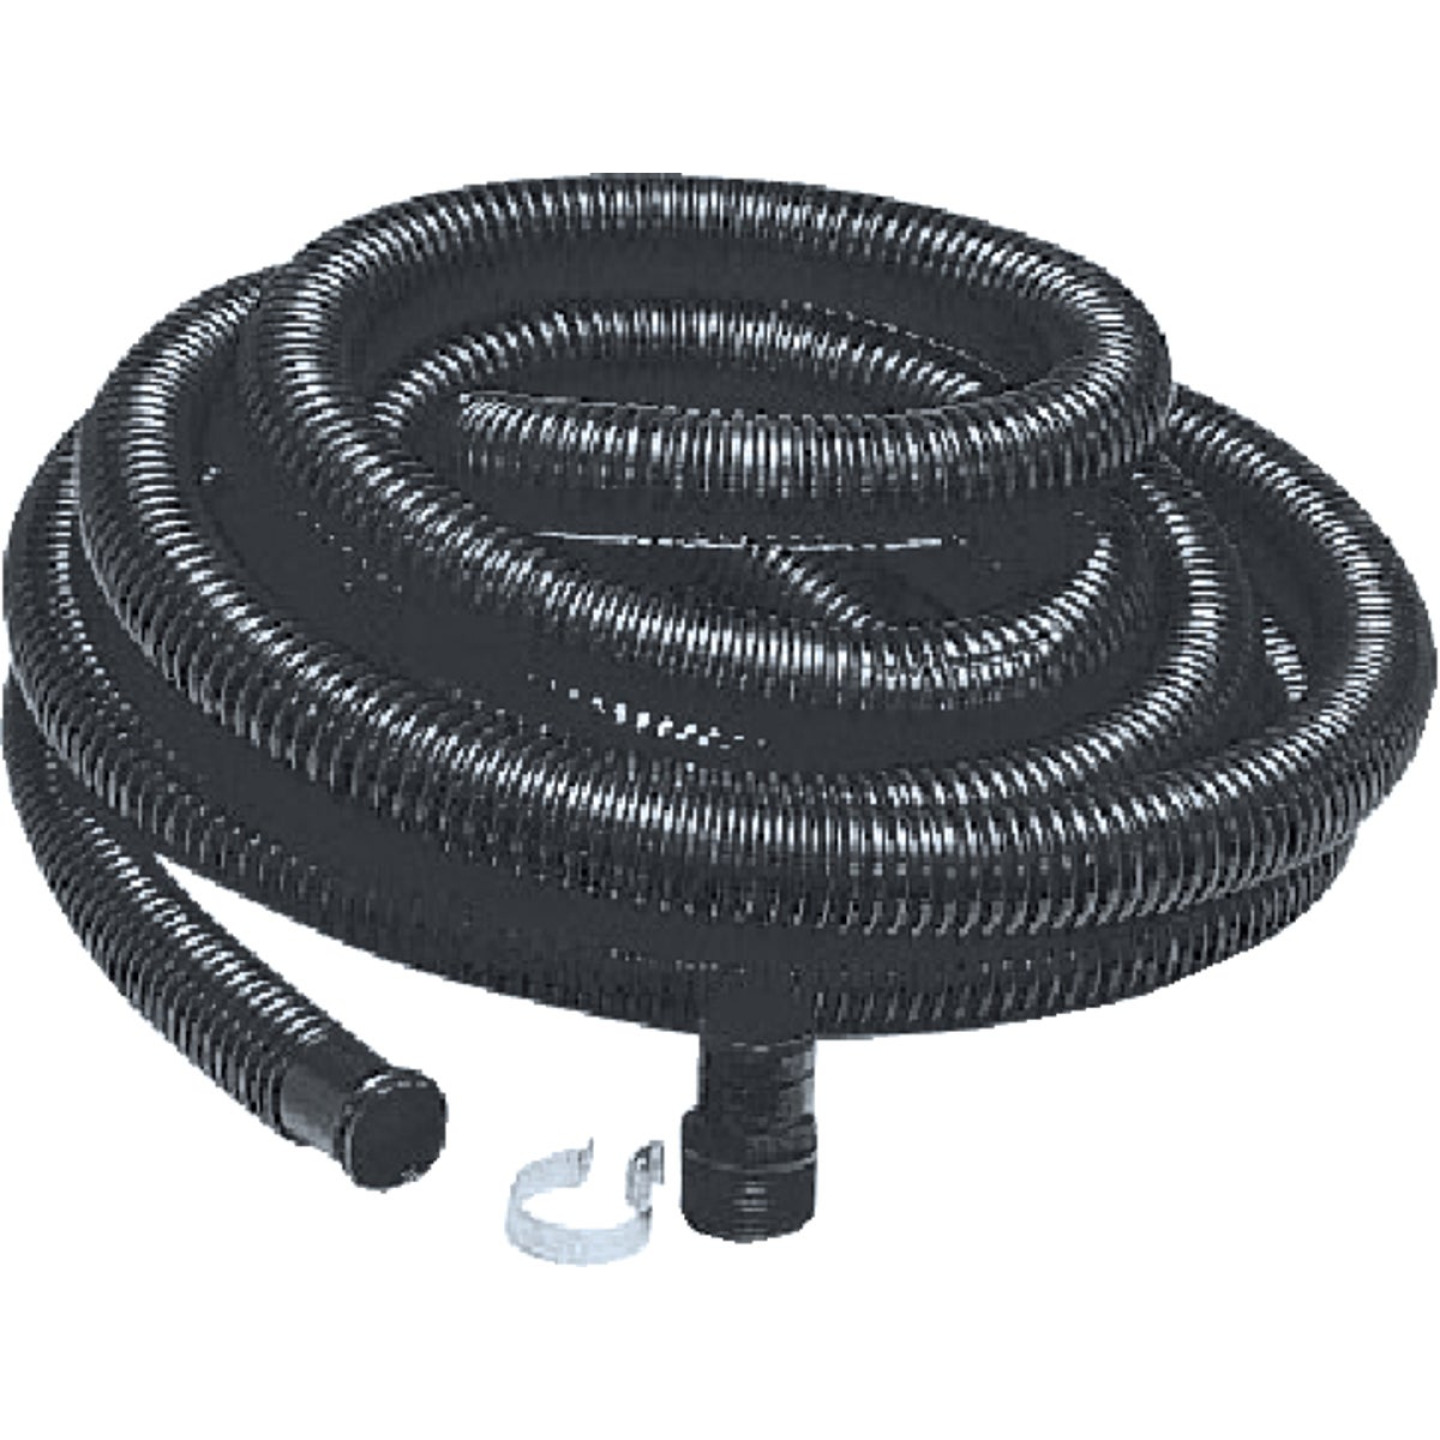 Prinsco 1-1/4 In. Dia. x 24 Ft. L Sump Pump Hose Kit Image 1